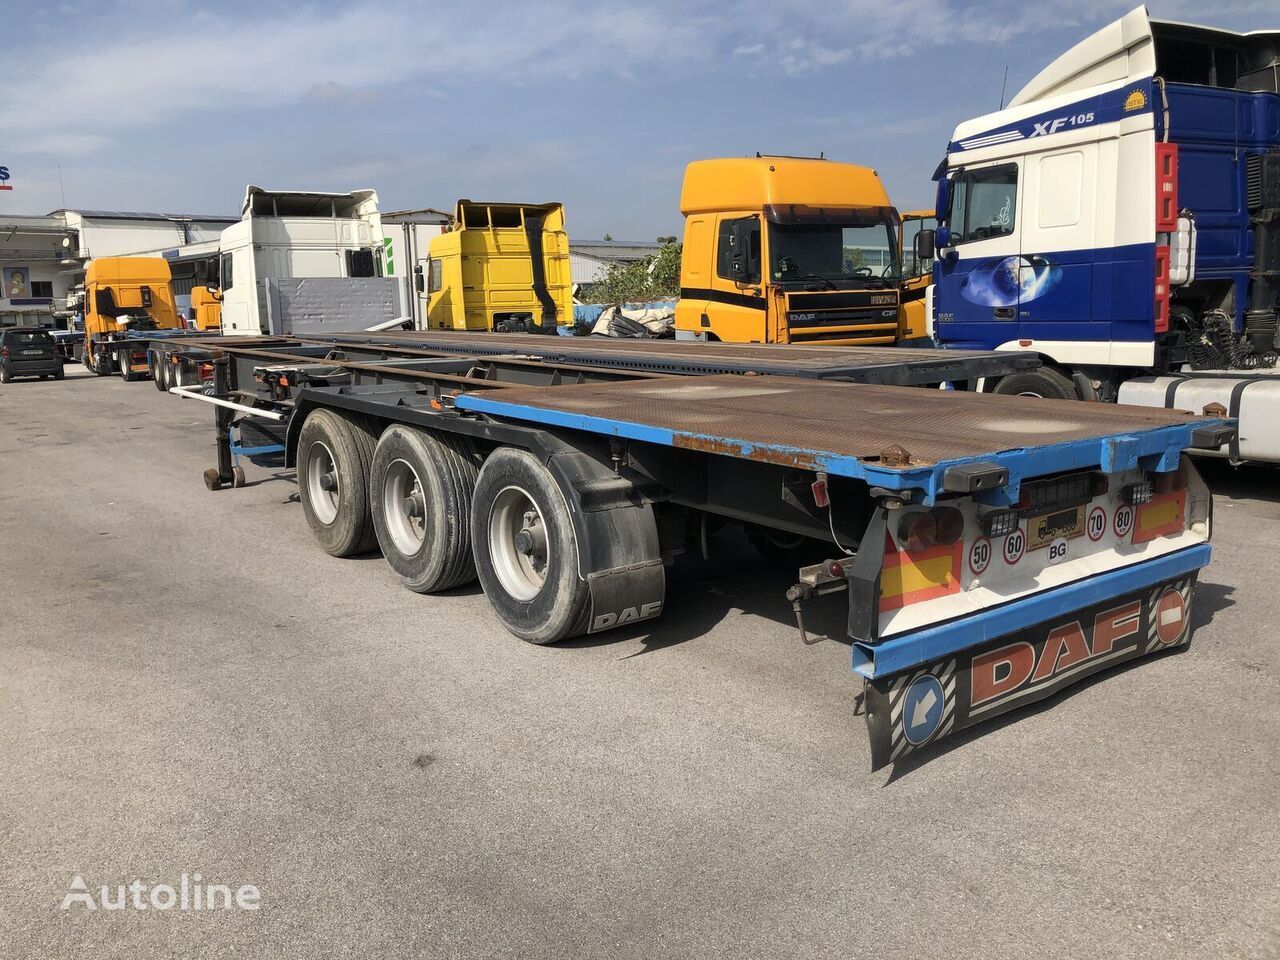 FRUEHAUF CONTAINER 40FT - 2X20FT,1X20FT container chassis semi-trailer